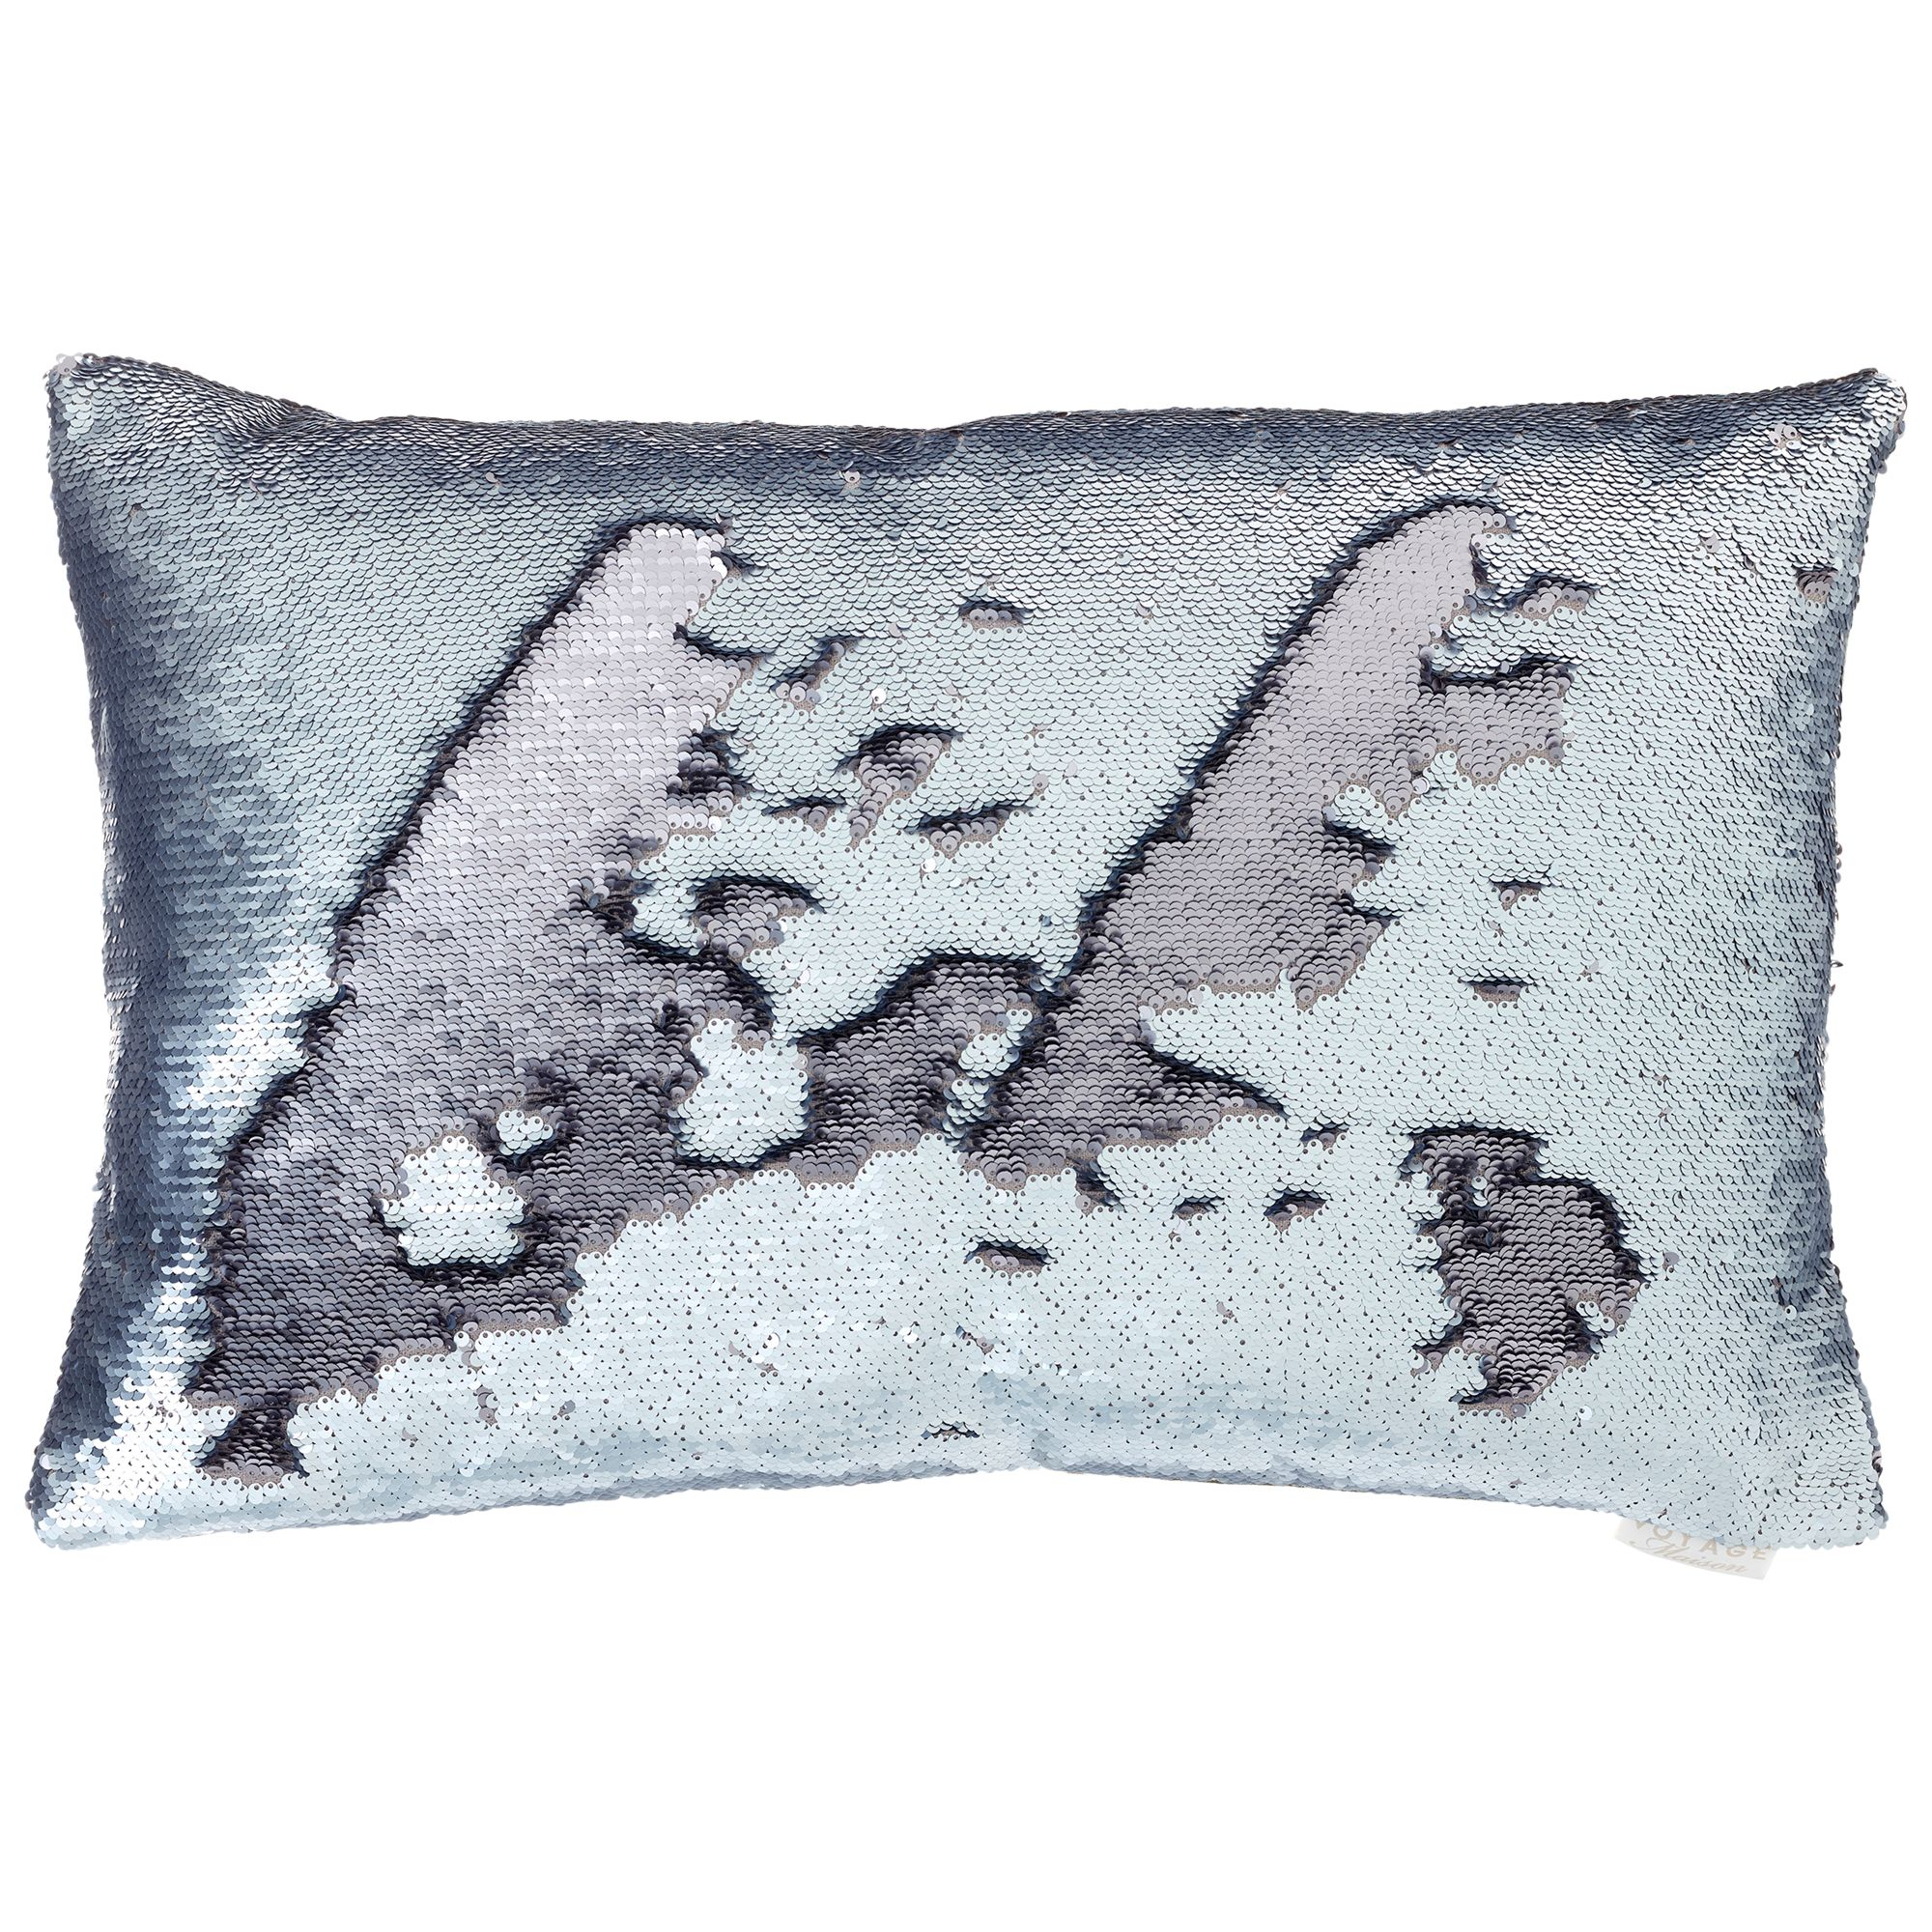 Voyage Voyage Elixir Cushion, Large